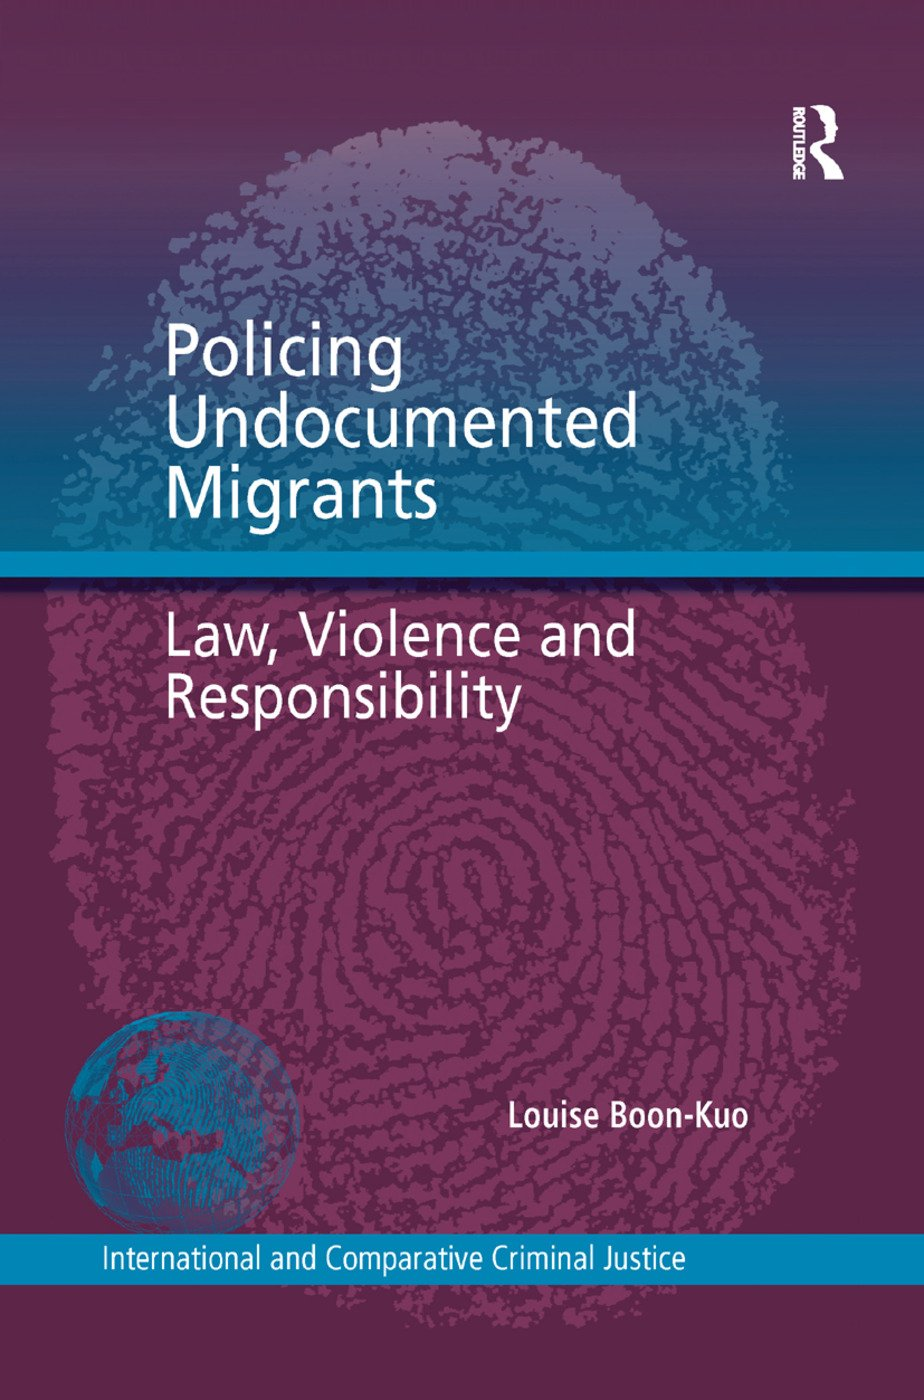 Policing Undocumented Migrants: Law, Violence and Responsibility book cover